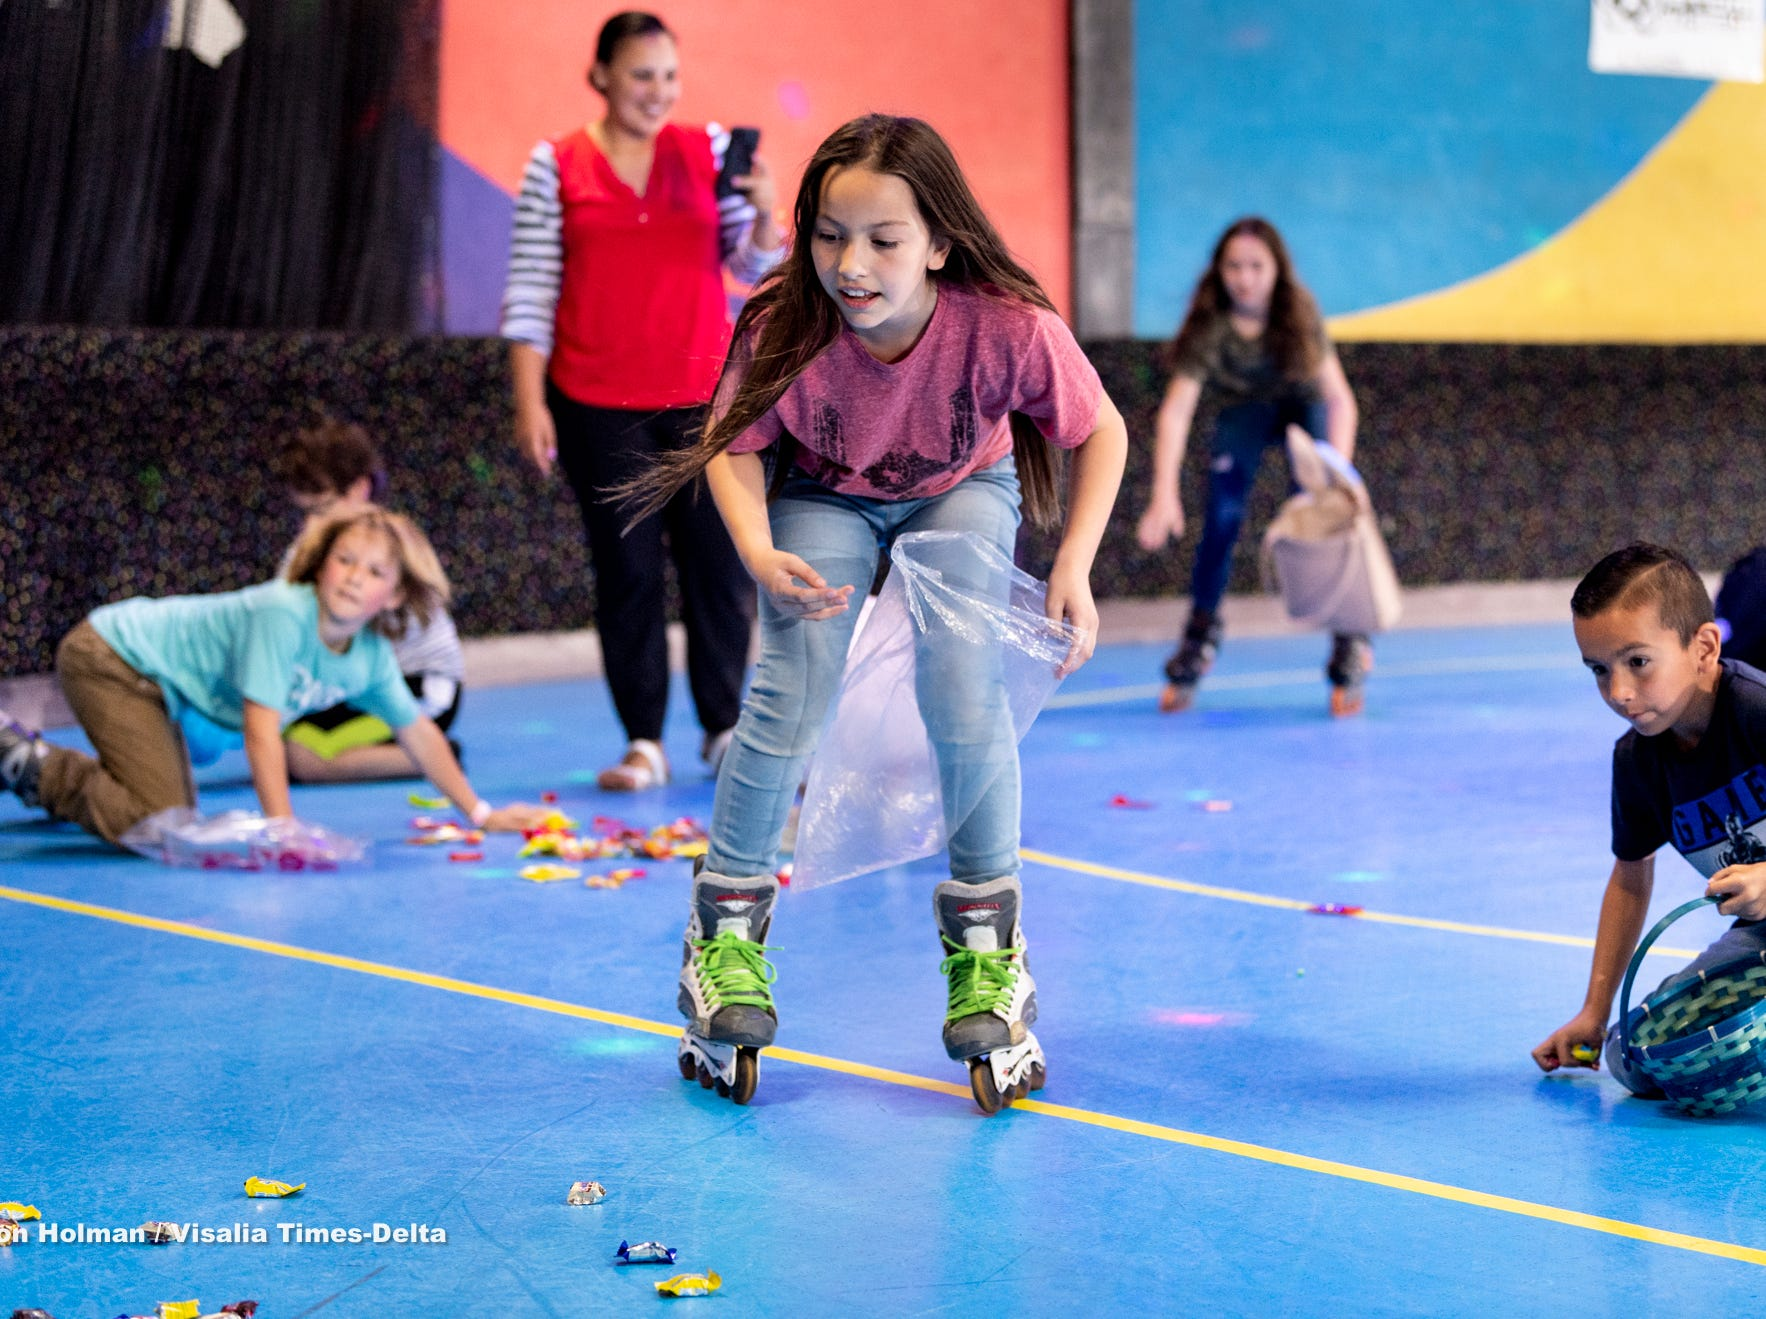 Rachel Schelich, 8, and other skaters at Roller Towne in Visalia scramble for candy and prizes during their pre-Easter egg hunt on Friday, April 19, 2019.